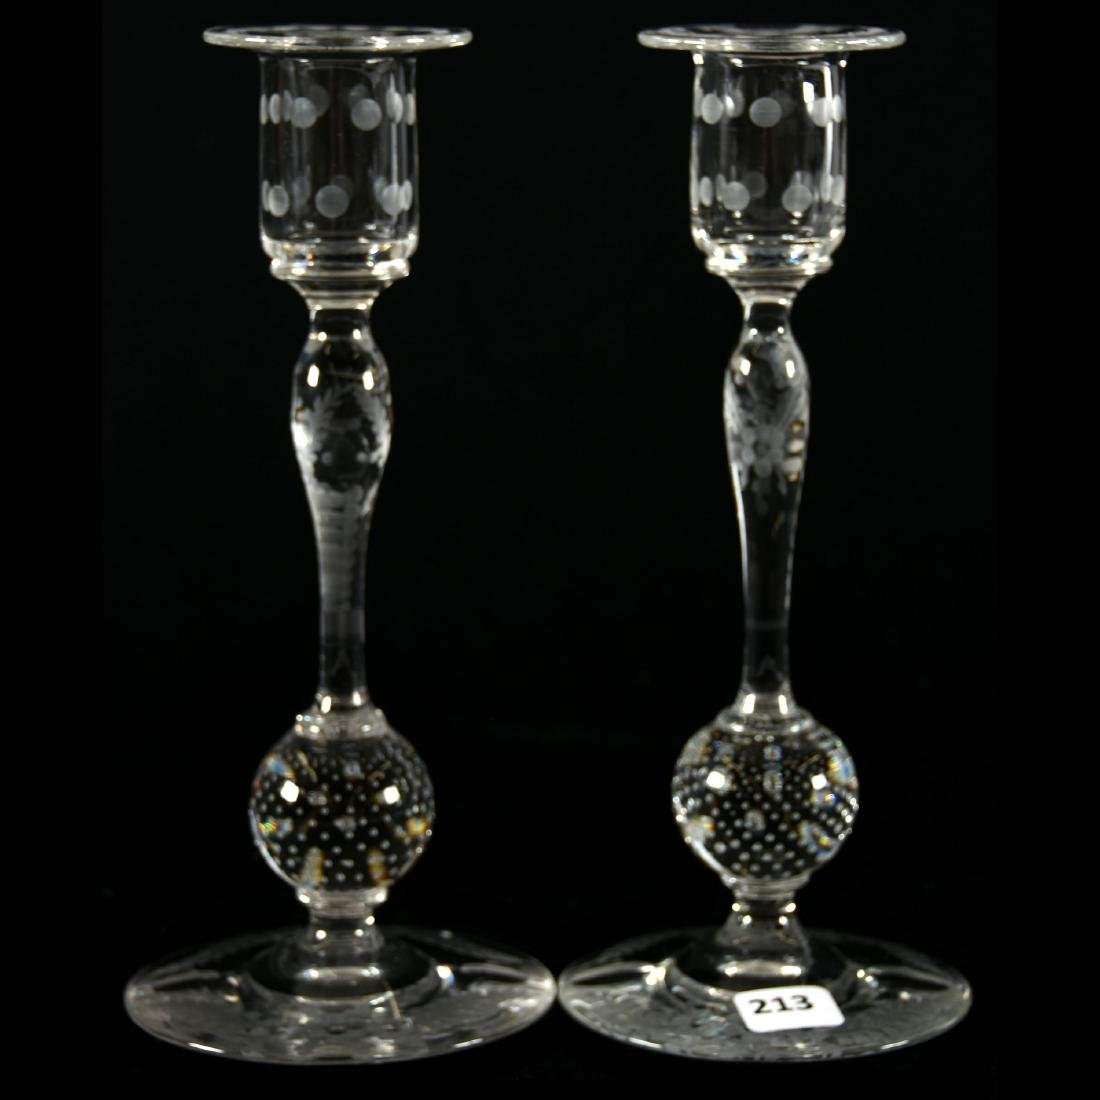 Pair Candlesticks, Pairpoint, Engraved Floral